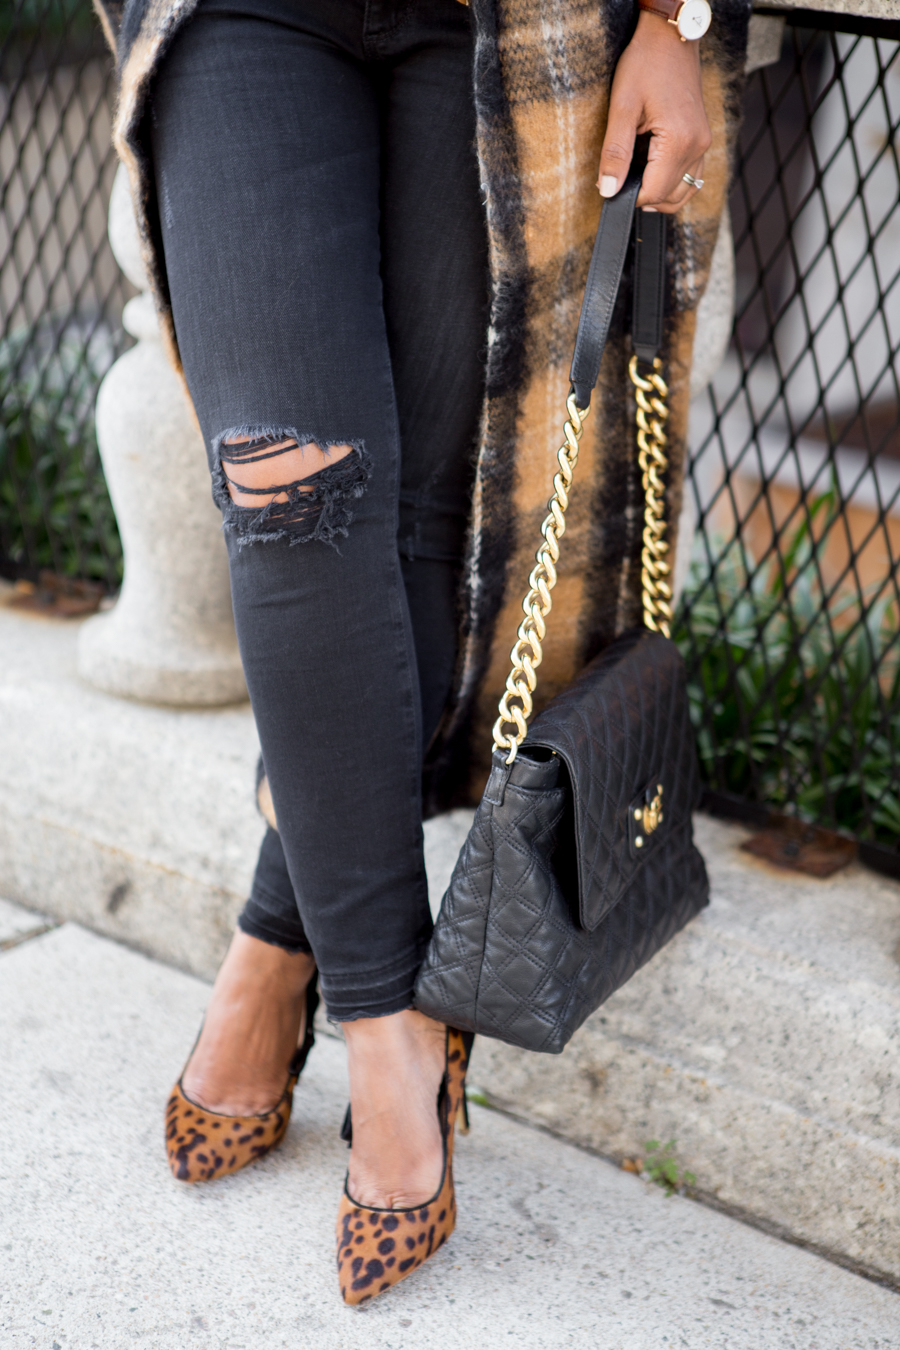 fall fashion, petite style, petite fashion, petite blogger, fall coats, statement coats, fall colors, fall trends, styling tips, free people, ann taylor, leopard pumps, distressed denim, petite jeans, raw hem, fringe jeans, ripped jeans, ag